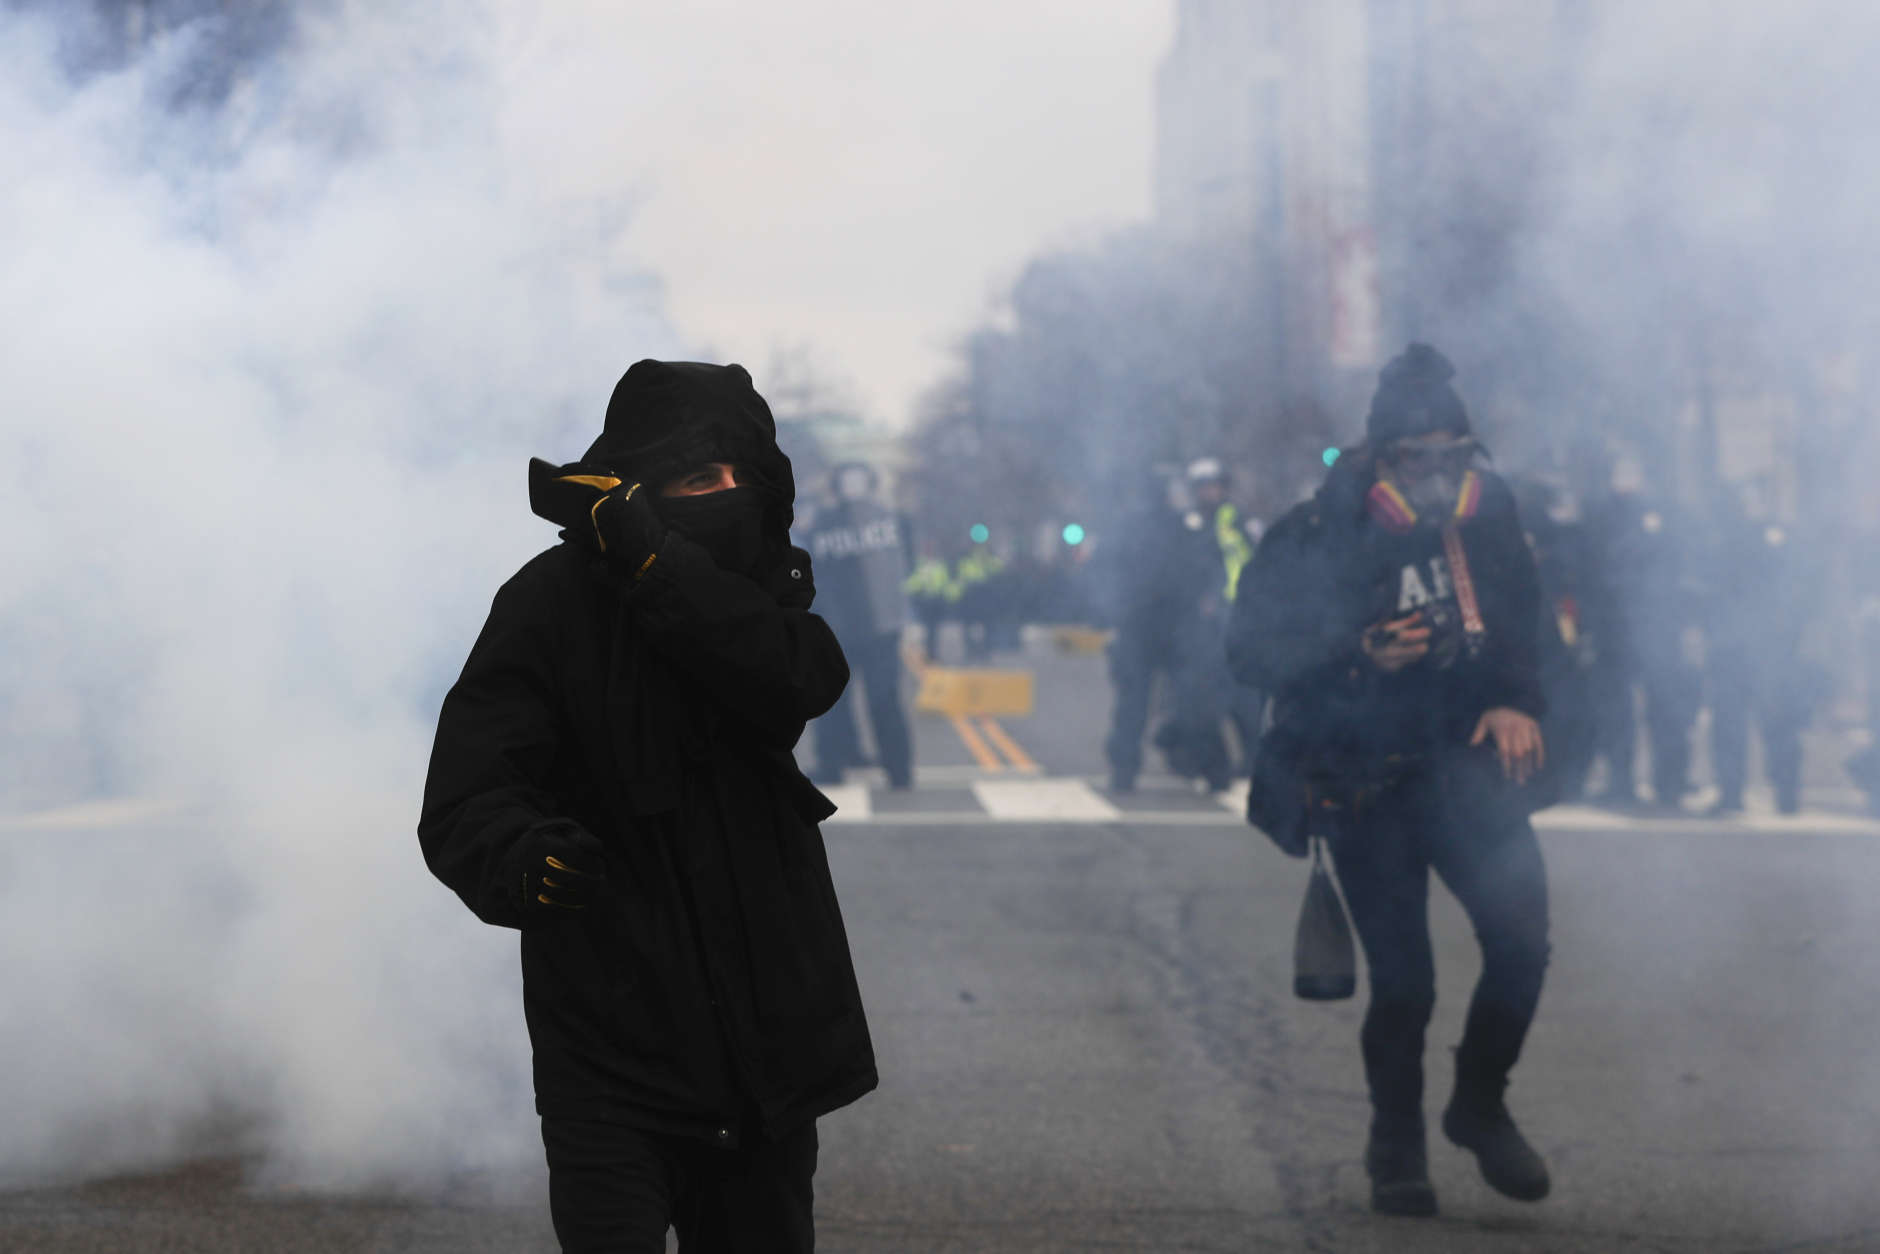 A protester shields his mouth and nose from gas fired by police during a demonstration after the inauguration of President Donald Trump, Friday, Jan. 20, 2017, in Washington. (AP Photo/John Minchillo)